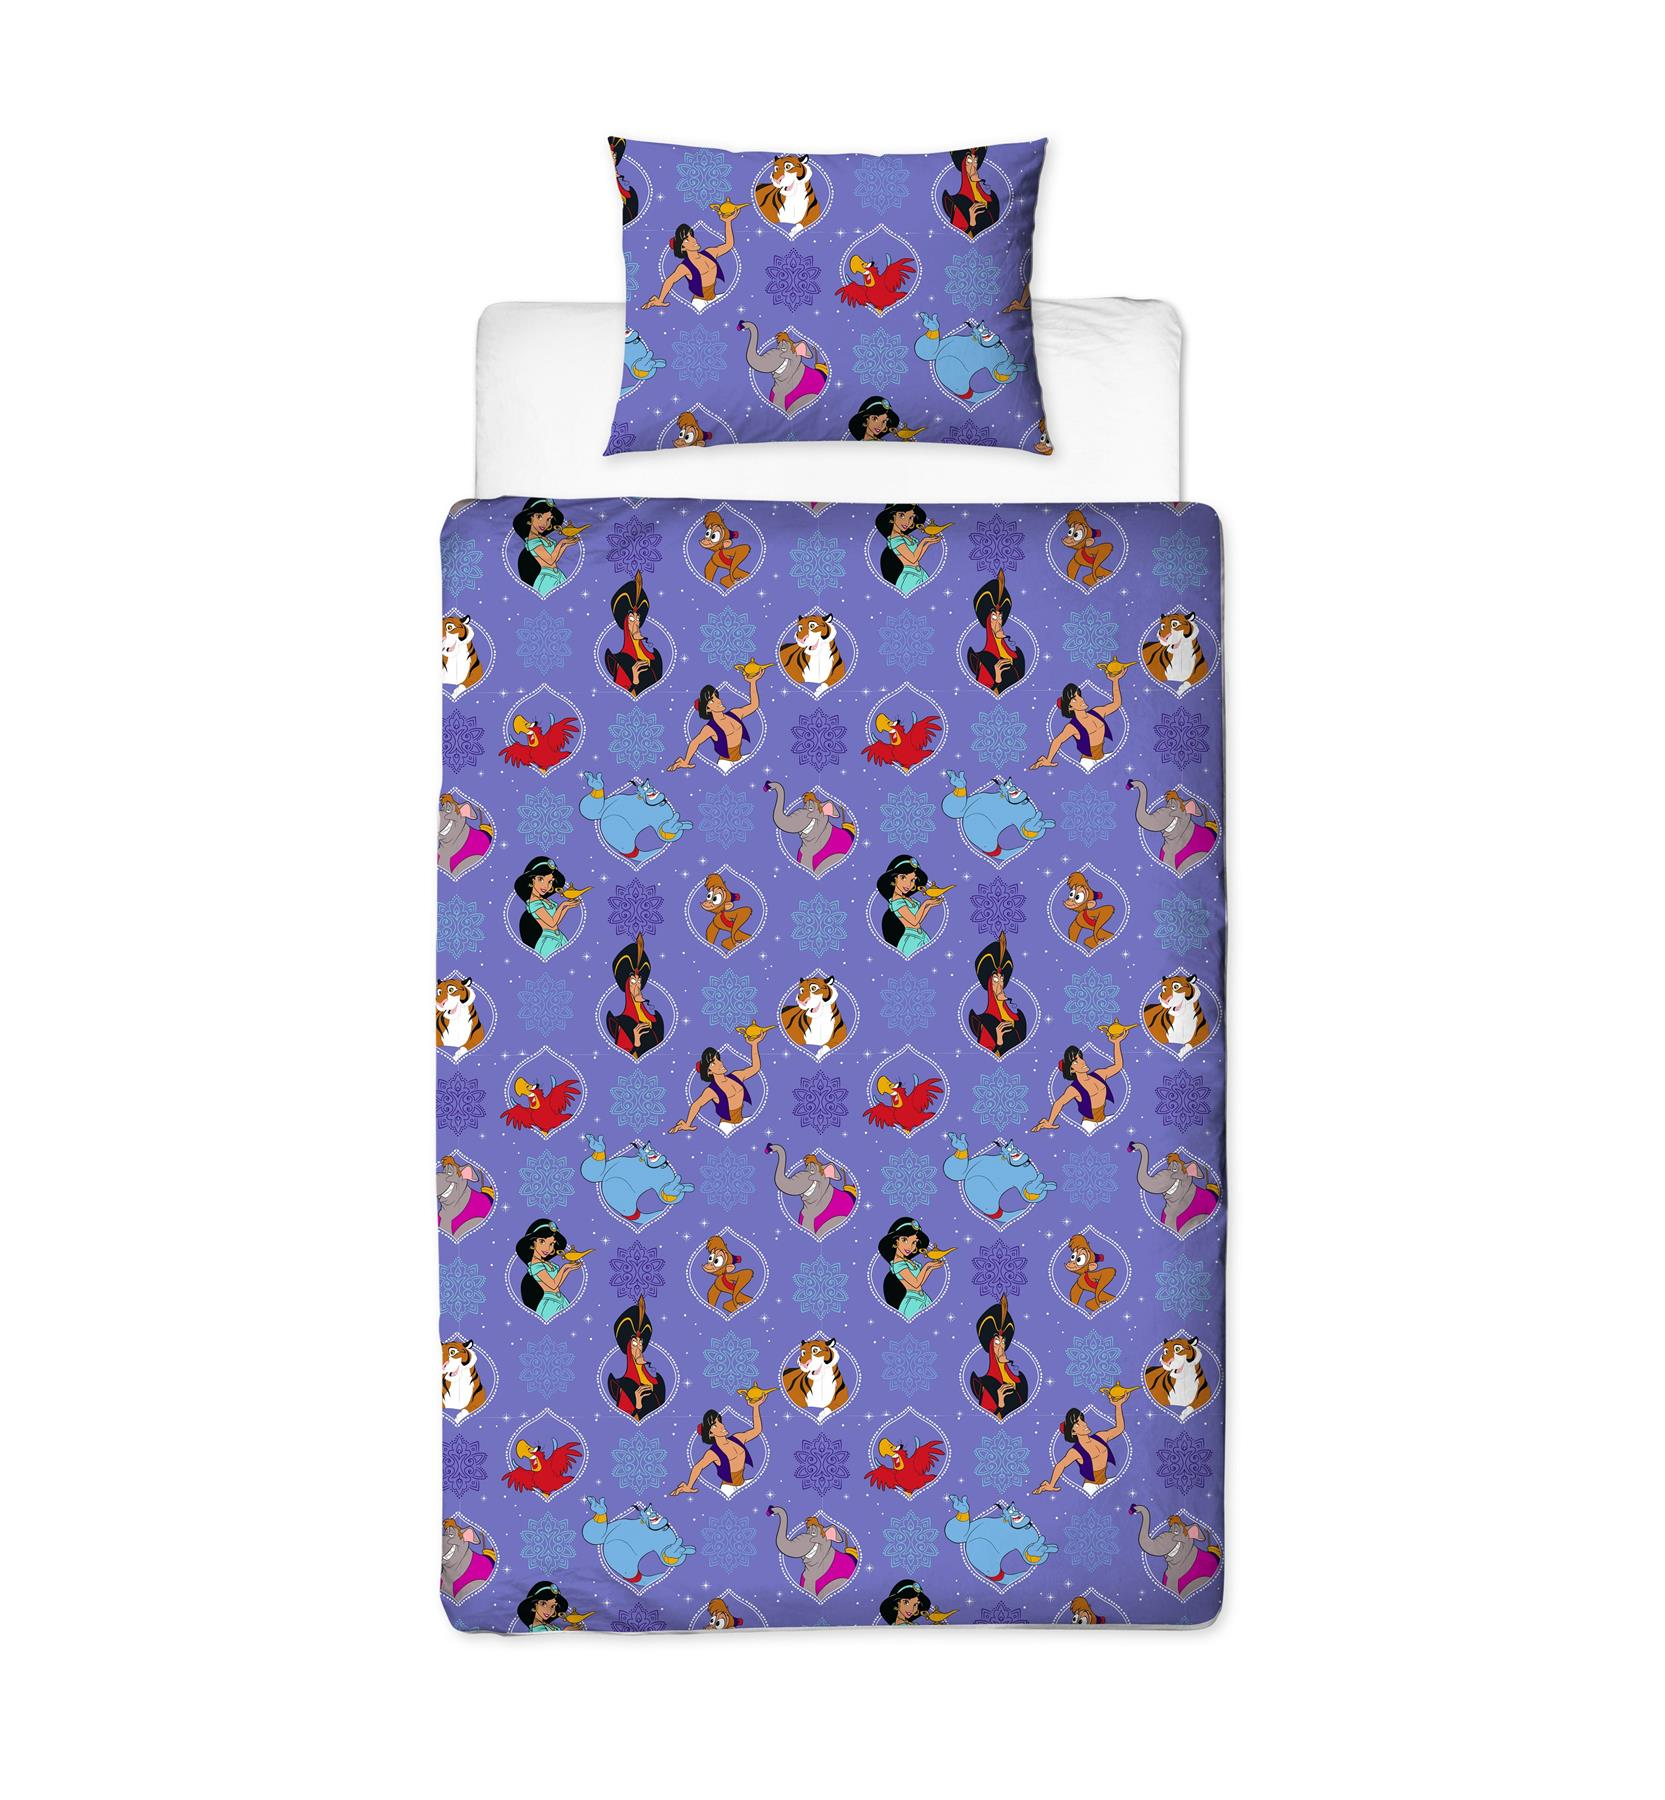 Official-Disney-Aladdin-Licensed-Duvet-Covers-Single-Double-Bedding-Genie thumbnail 14